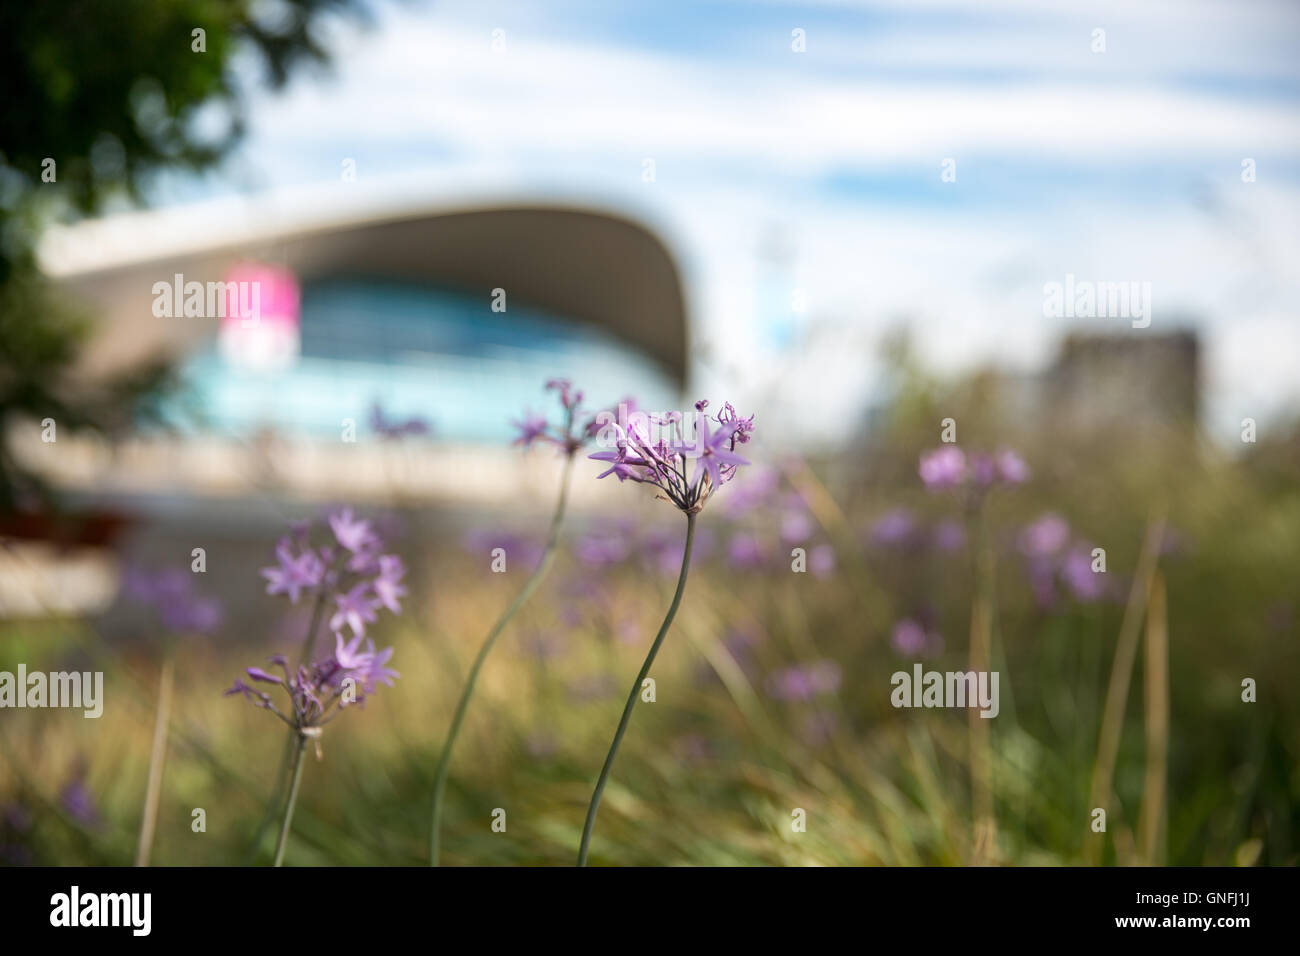 UK Weather Beautiful At Midday Olympic Park Copyright Carol Moir Alamy Live News